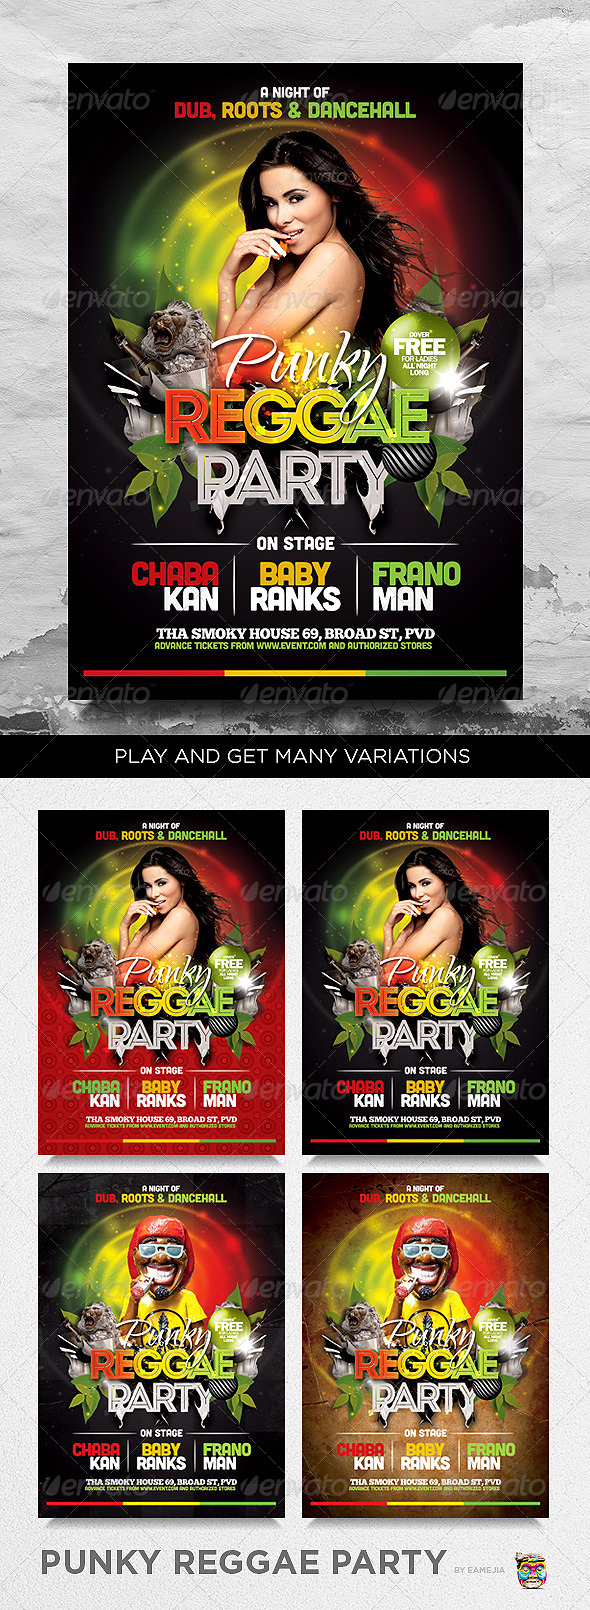 Punky Reggae Party Flyer Template - Clubs & Parties Events